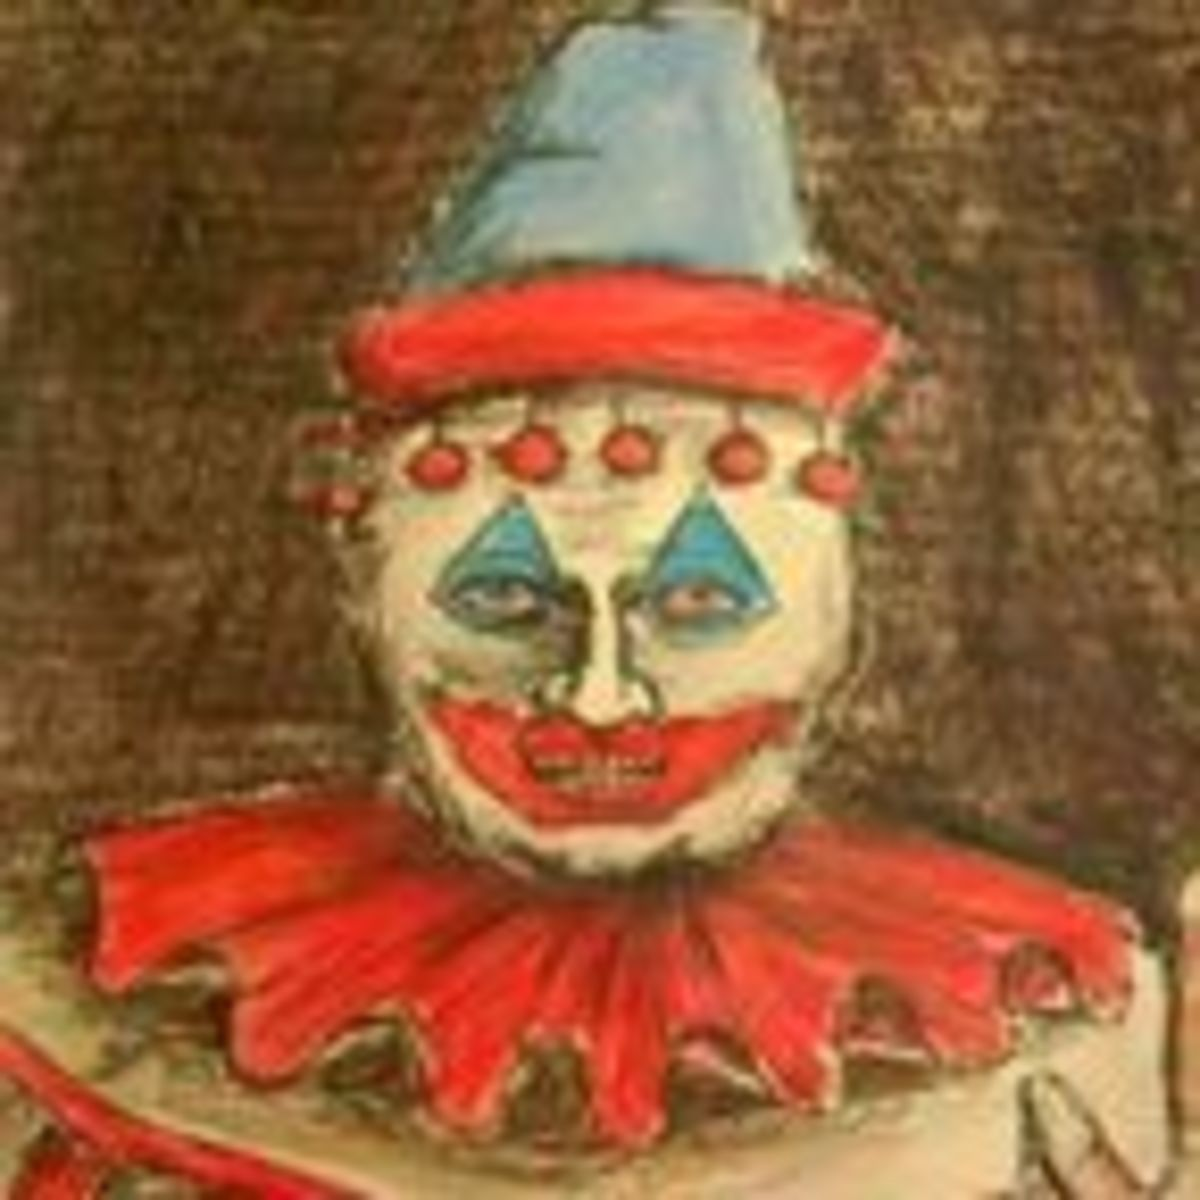 Why Clowns Creep Us Out | Psychology Today